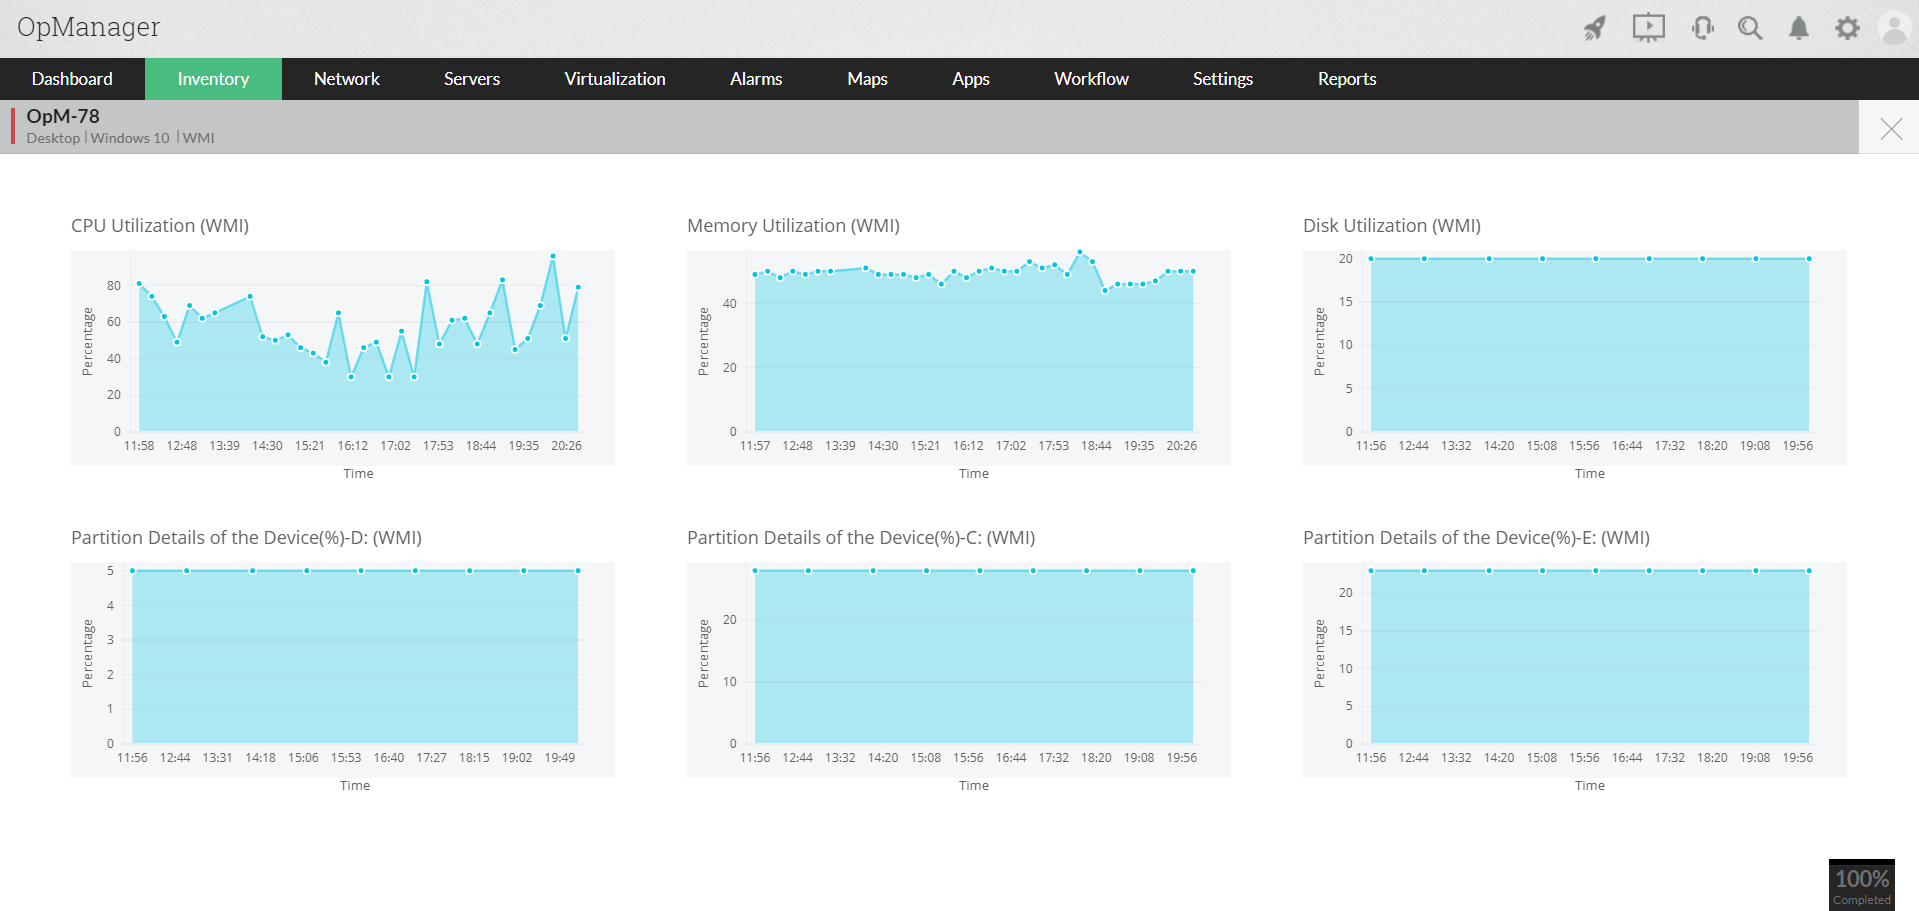 NOC Monitoring - ManageEngine OpManager